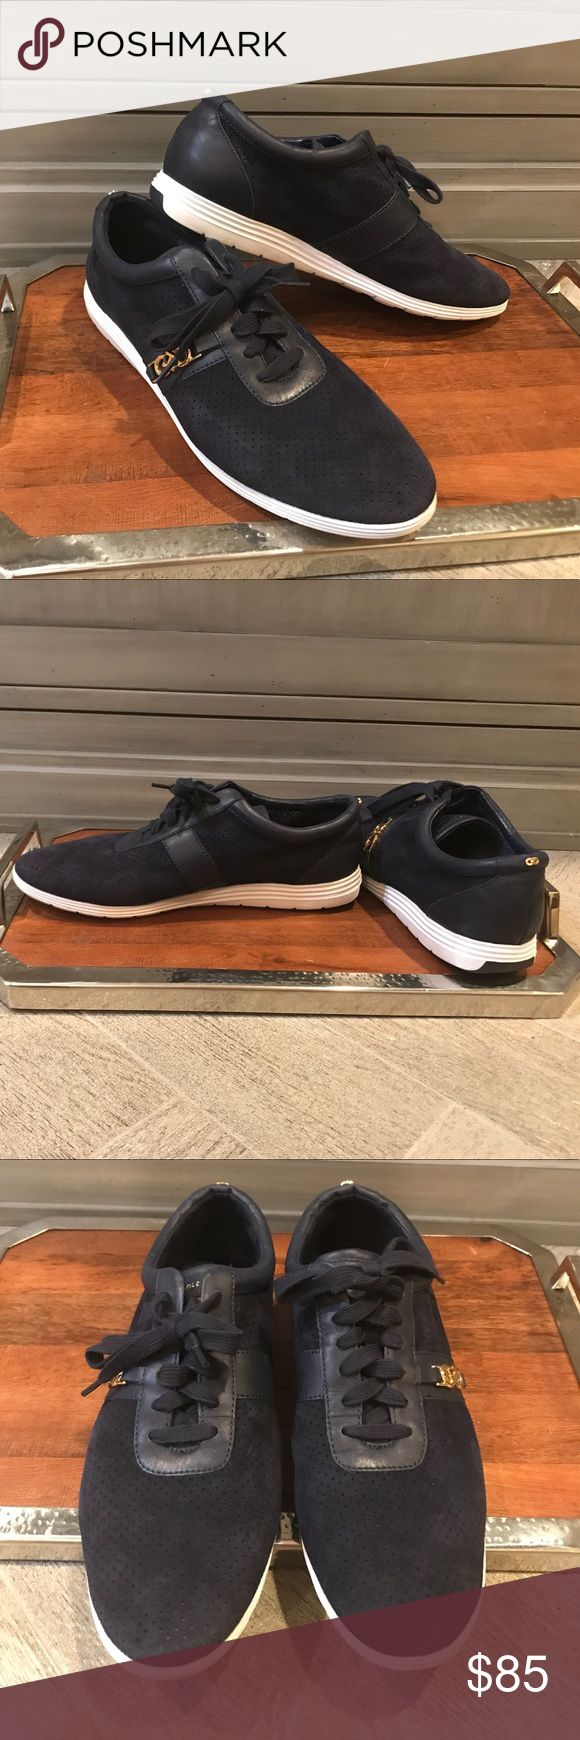 Cole Haan Bria blue suede sneakers Just worn in the store. Excellent condition. Perforated toe, gold logo on sides and back with leather trim detailing. A beautiful dressy-casual pair of sneakers. Cole Haan Shoes Sneakers